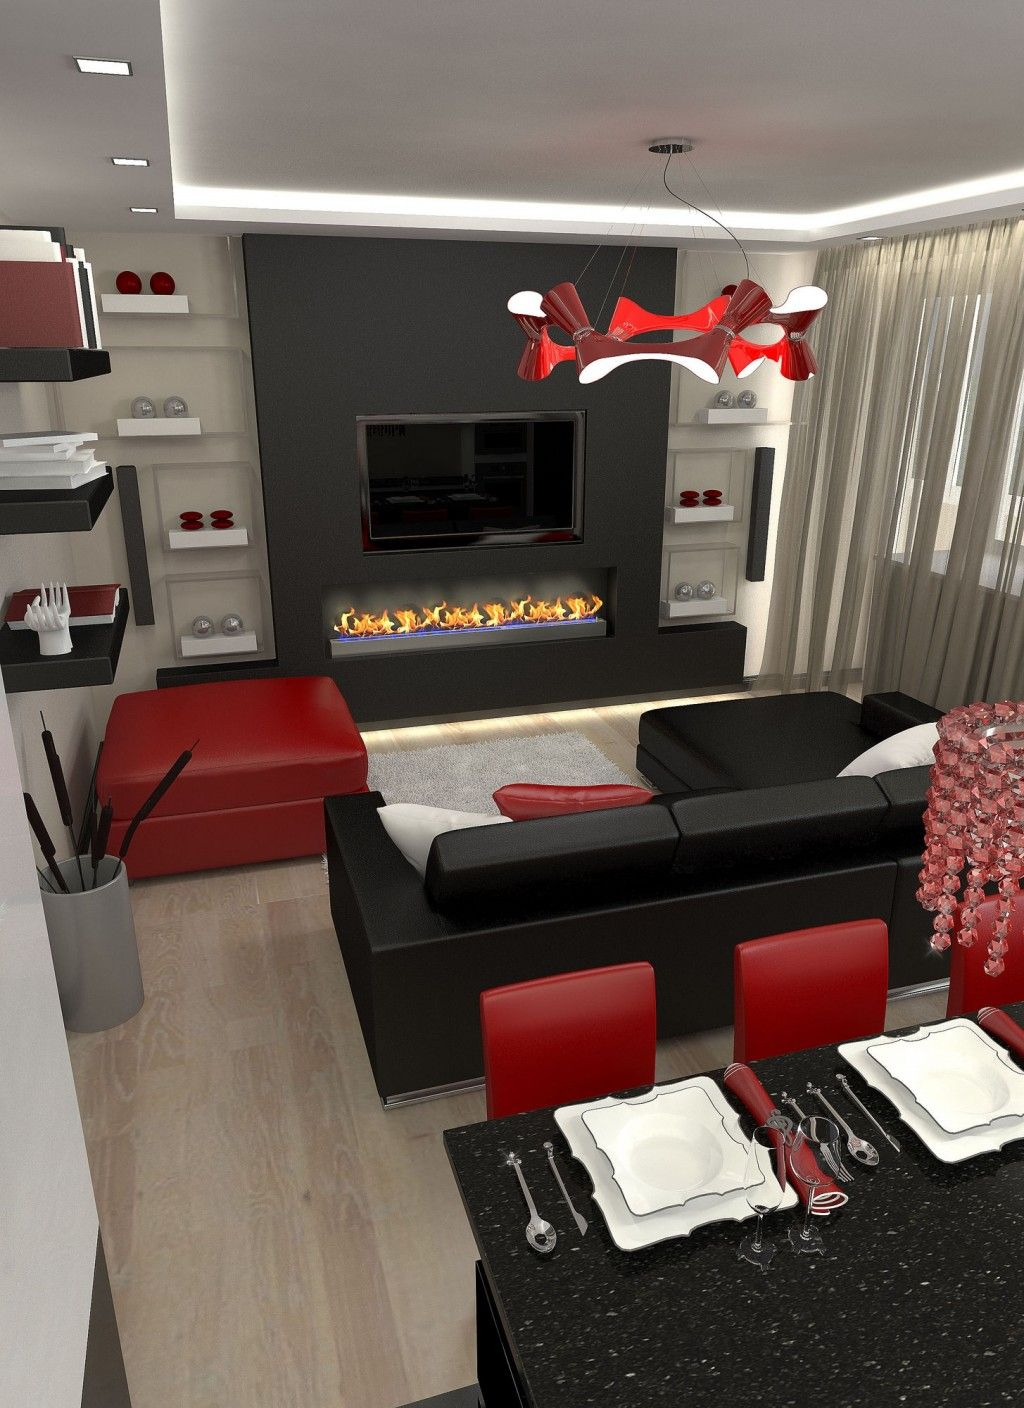 Charmant Red Black And White Living Room Decor And Furniture Large Size .